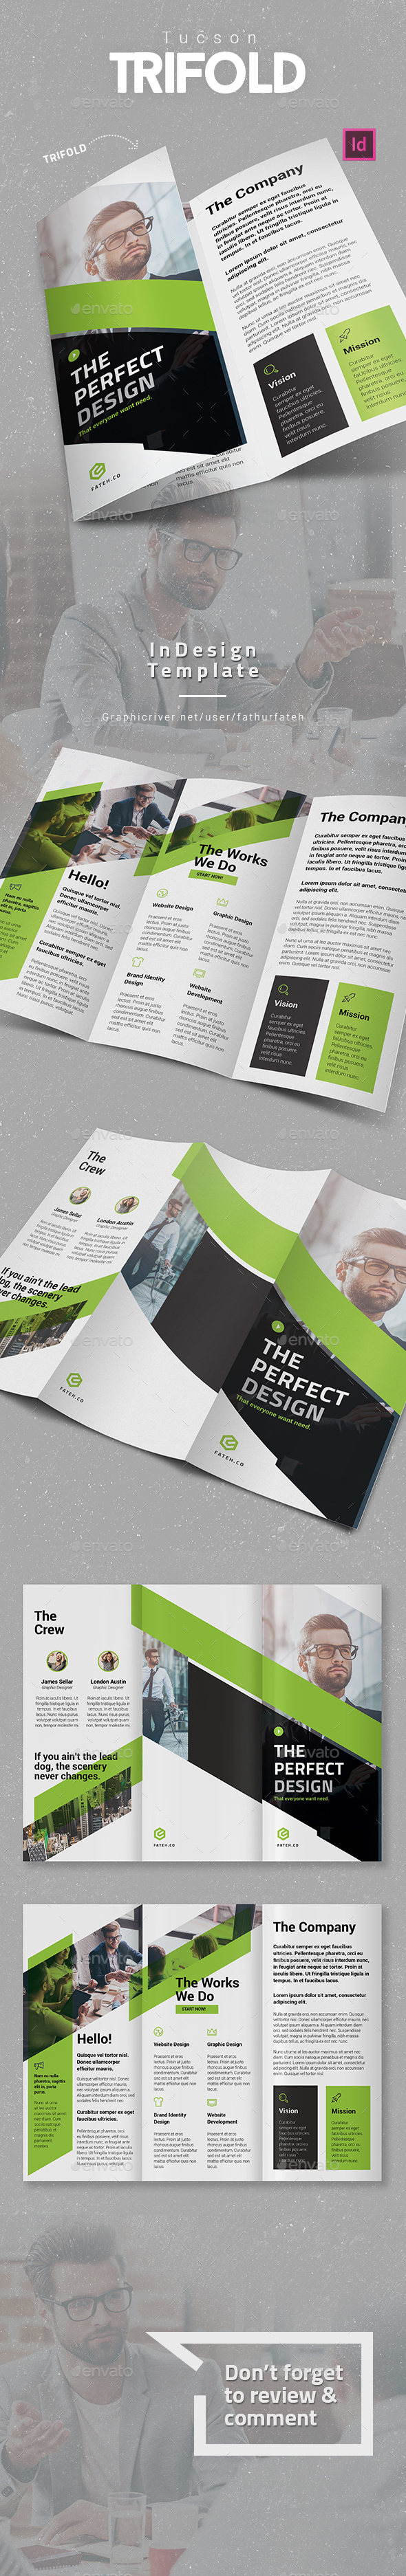 Tucson Trifold - Corporate Brochures